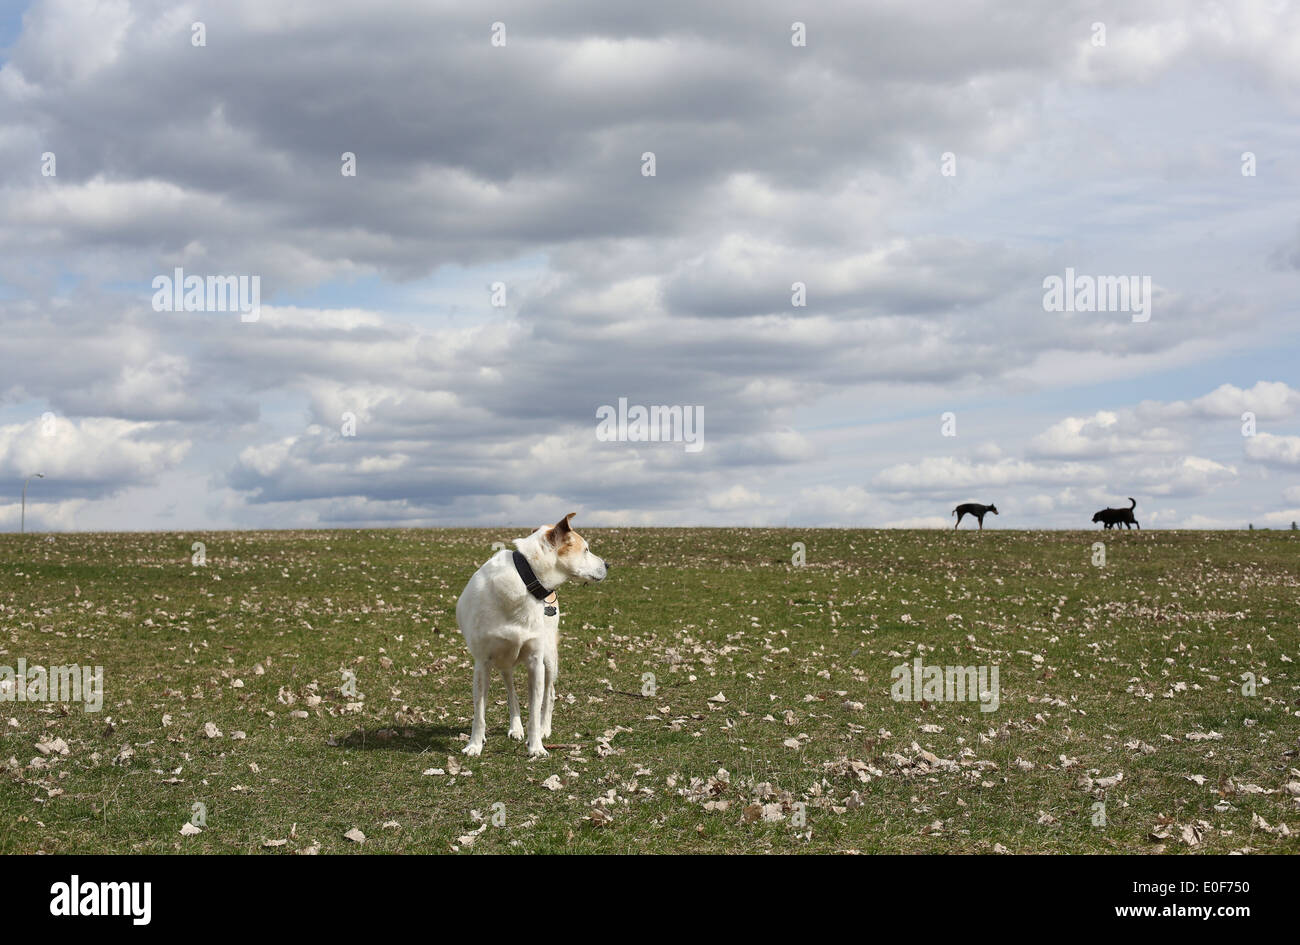 A dog standing in a grassy field looking at two other dogs behind him. - Stock Image